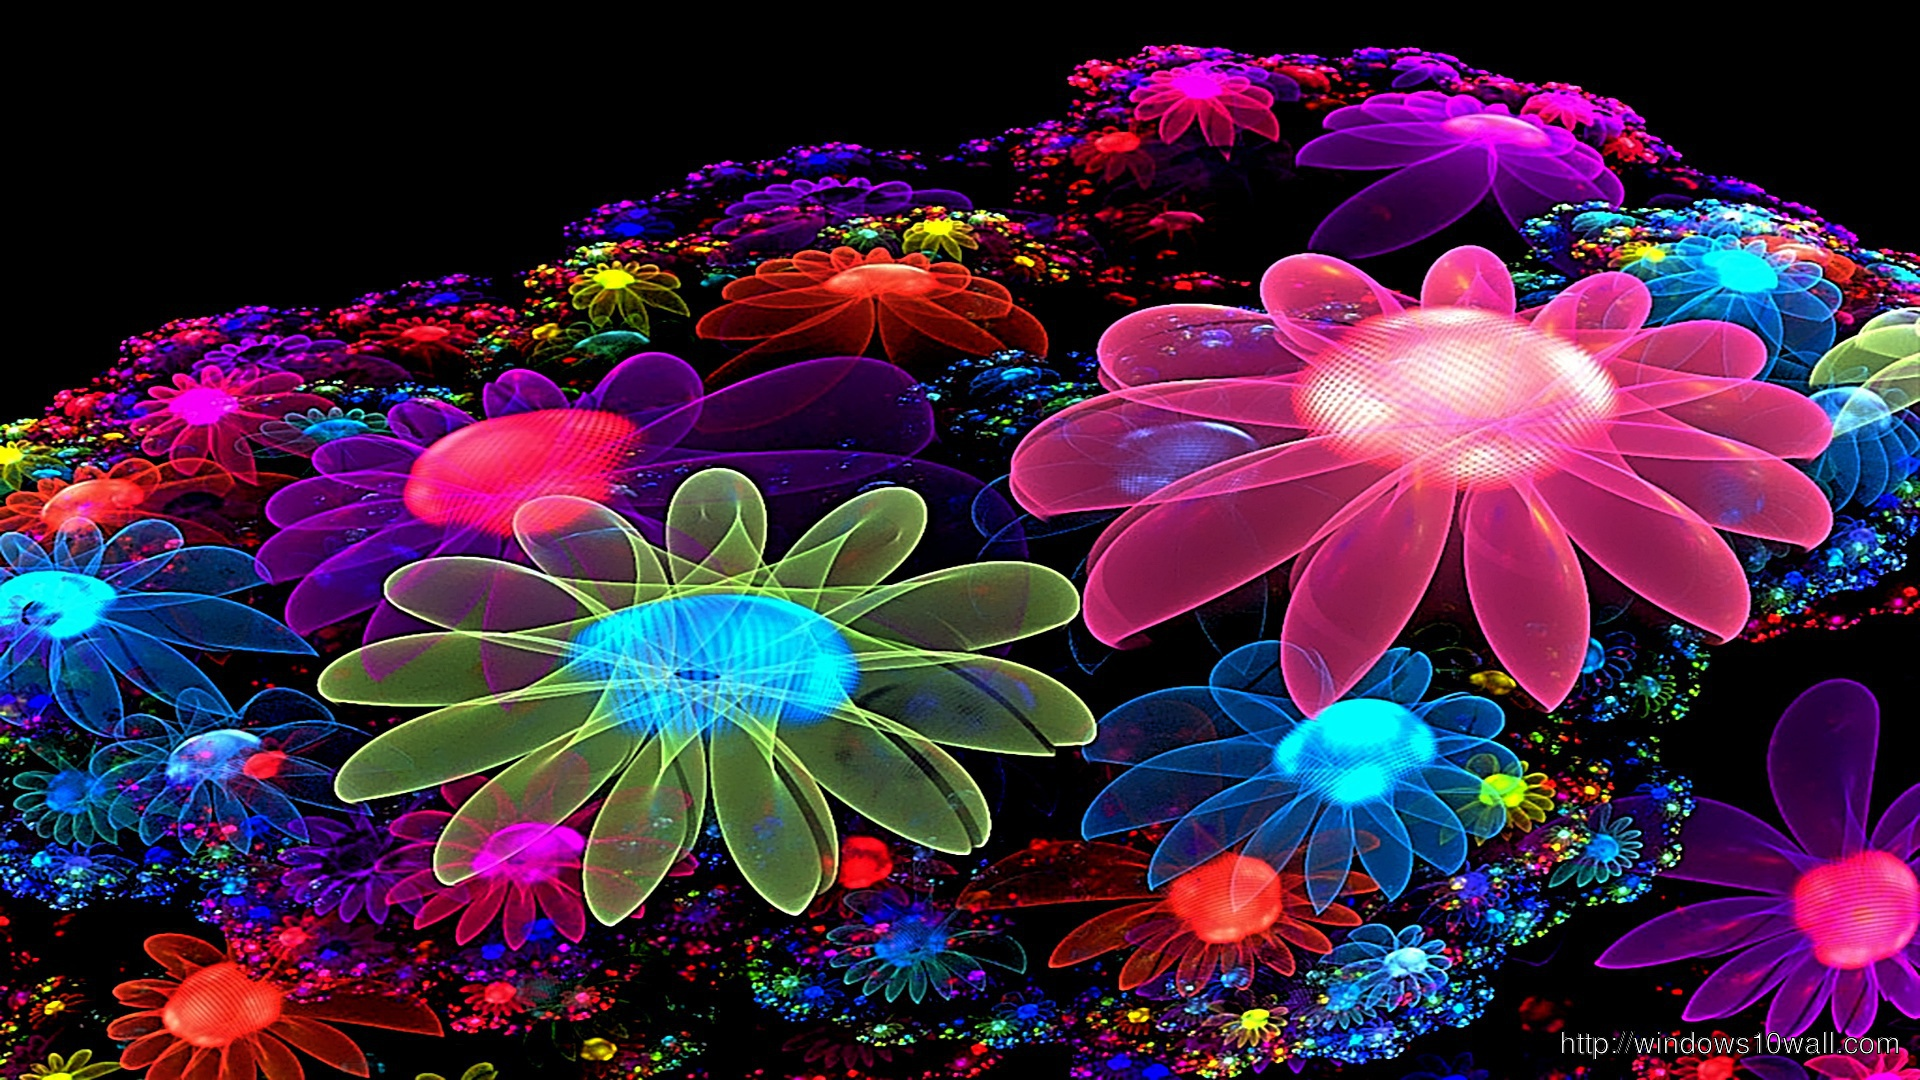 Animated Cool Colorful Flowers Desktop Wallpaper Windows 10 Wallpapers